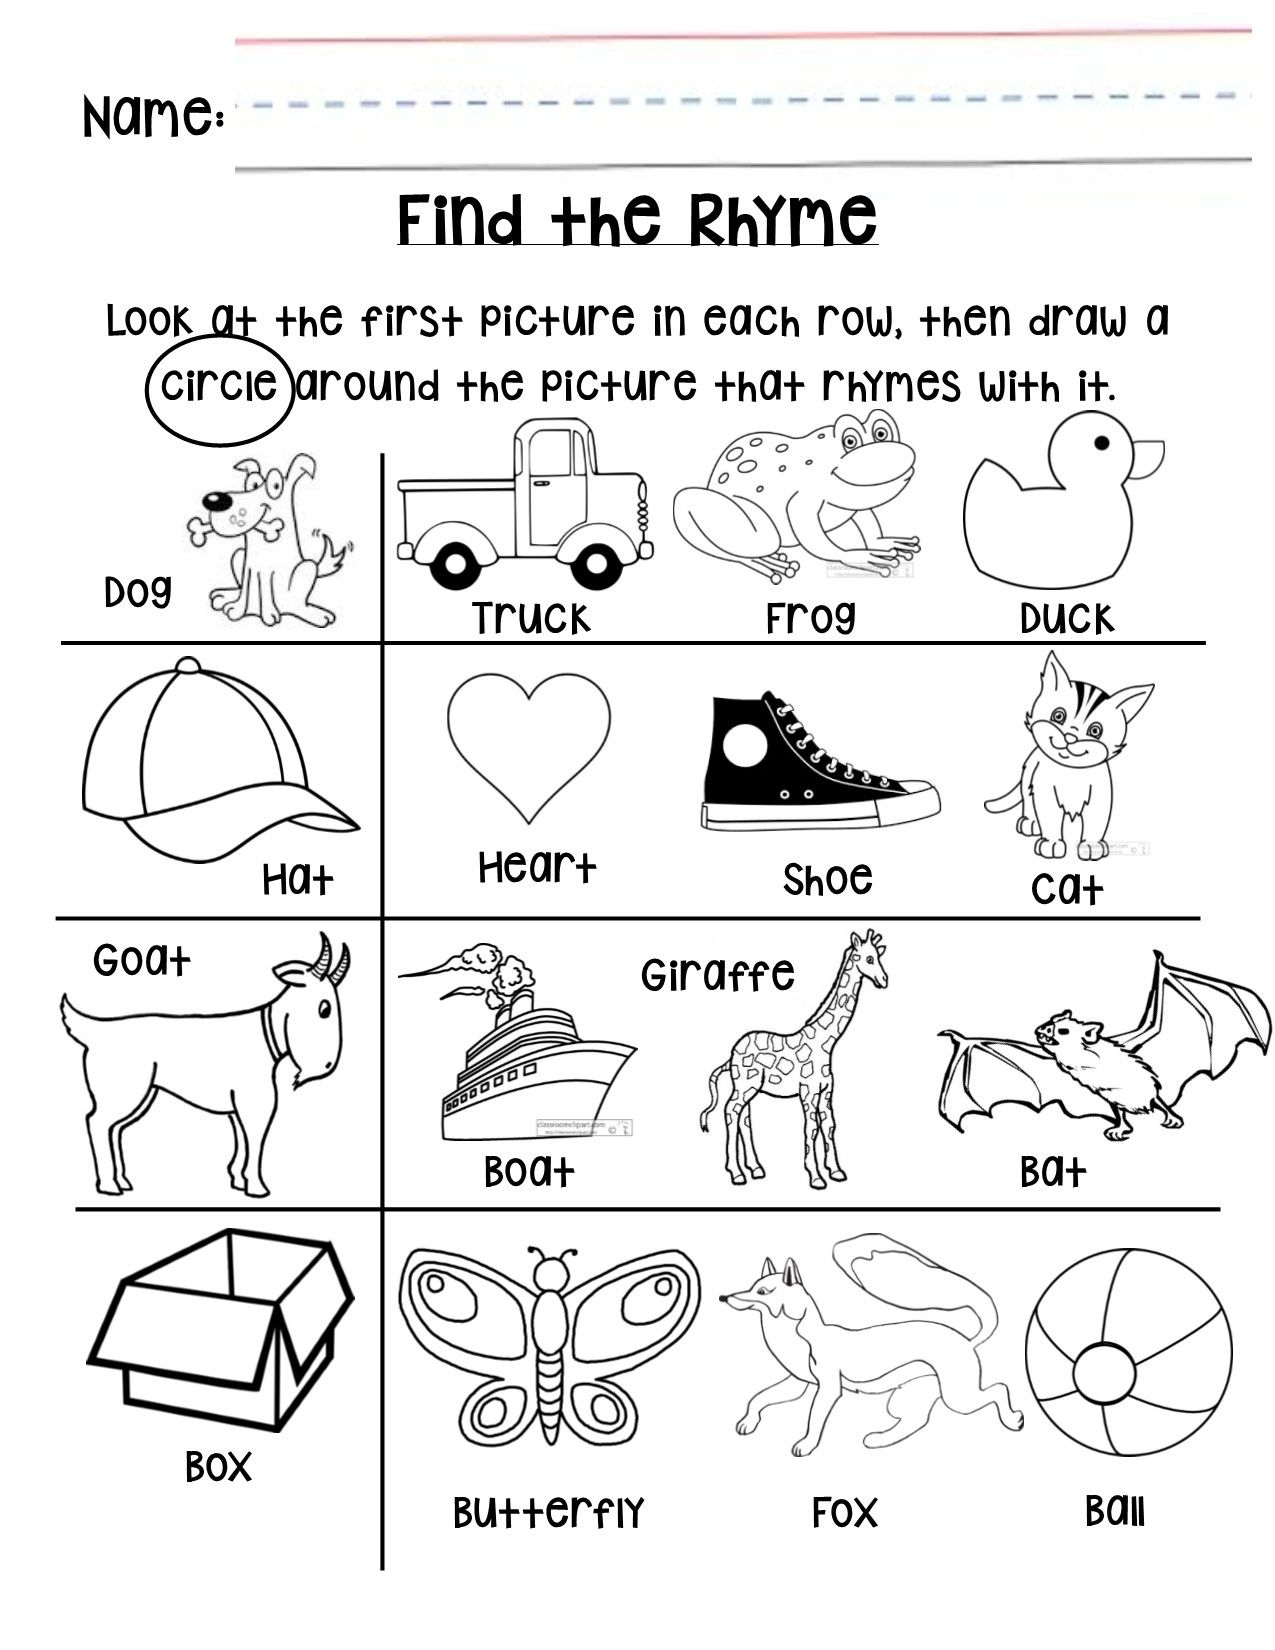 Rhyming Worksheet For Grades Preschool Or Kindergarten Early Pre - Free Printable Rhyming Activities For Kindergarten